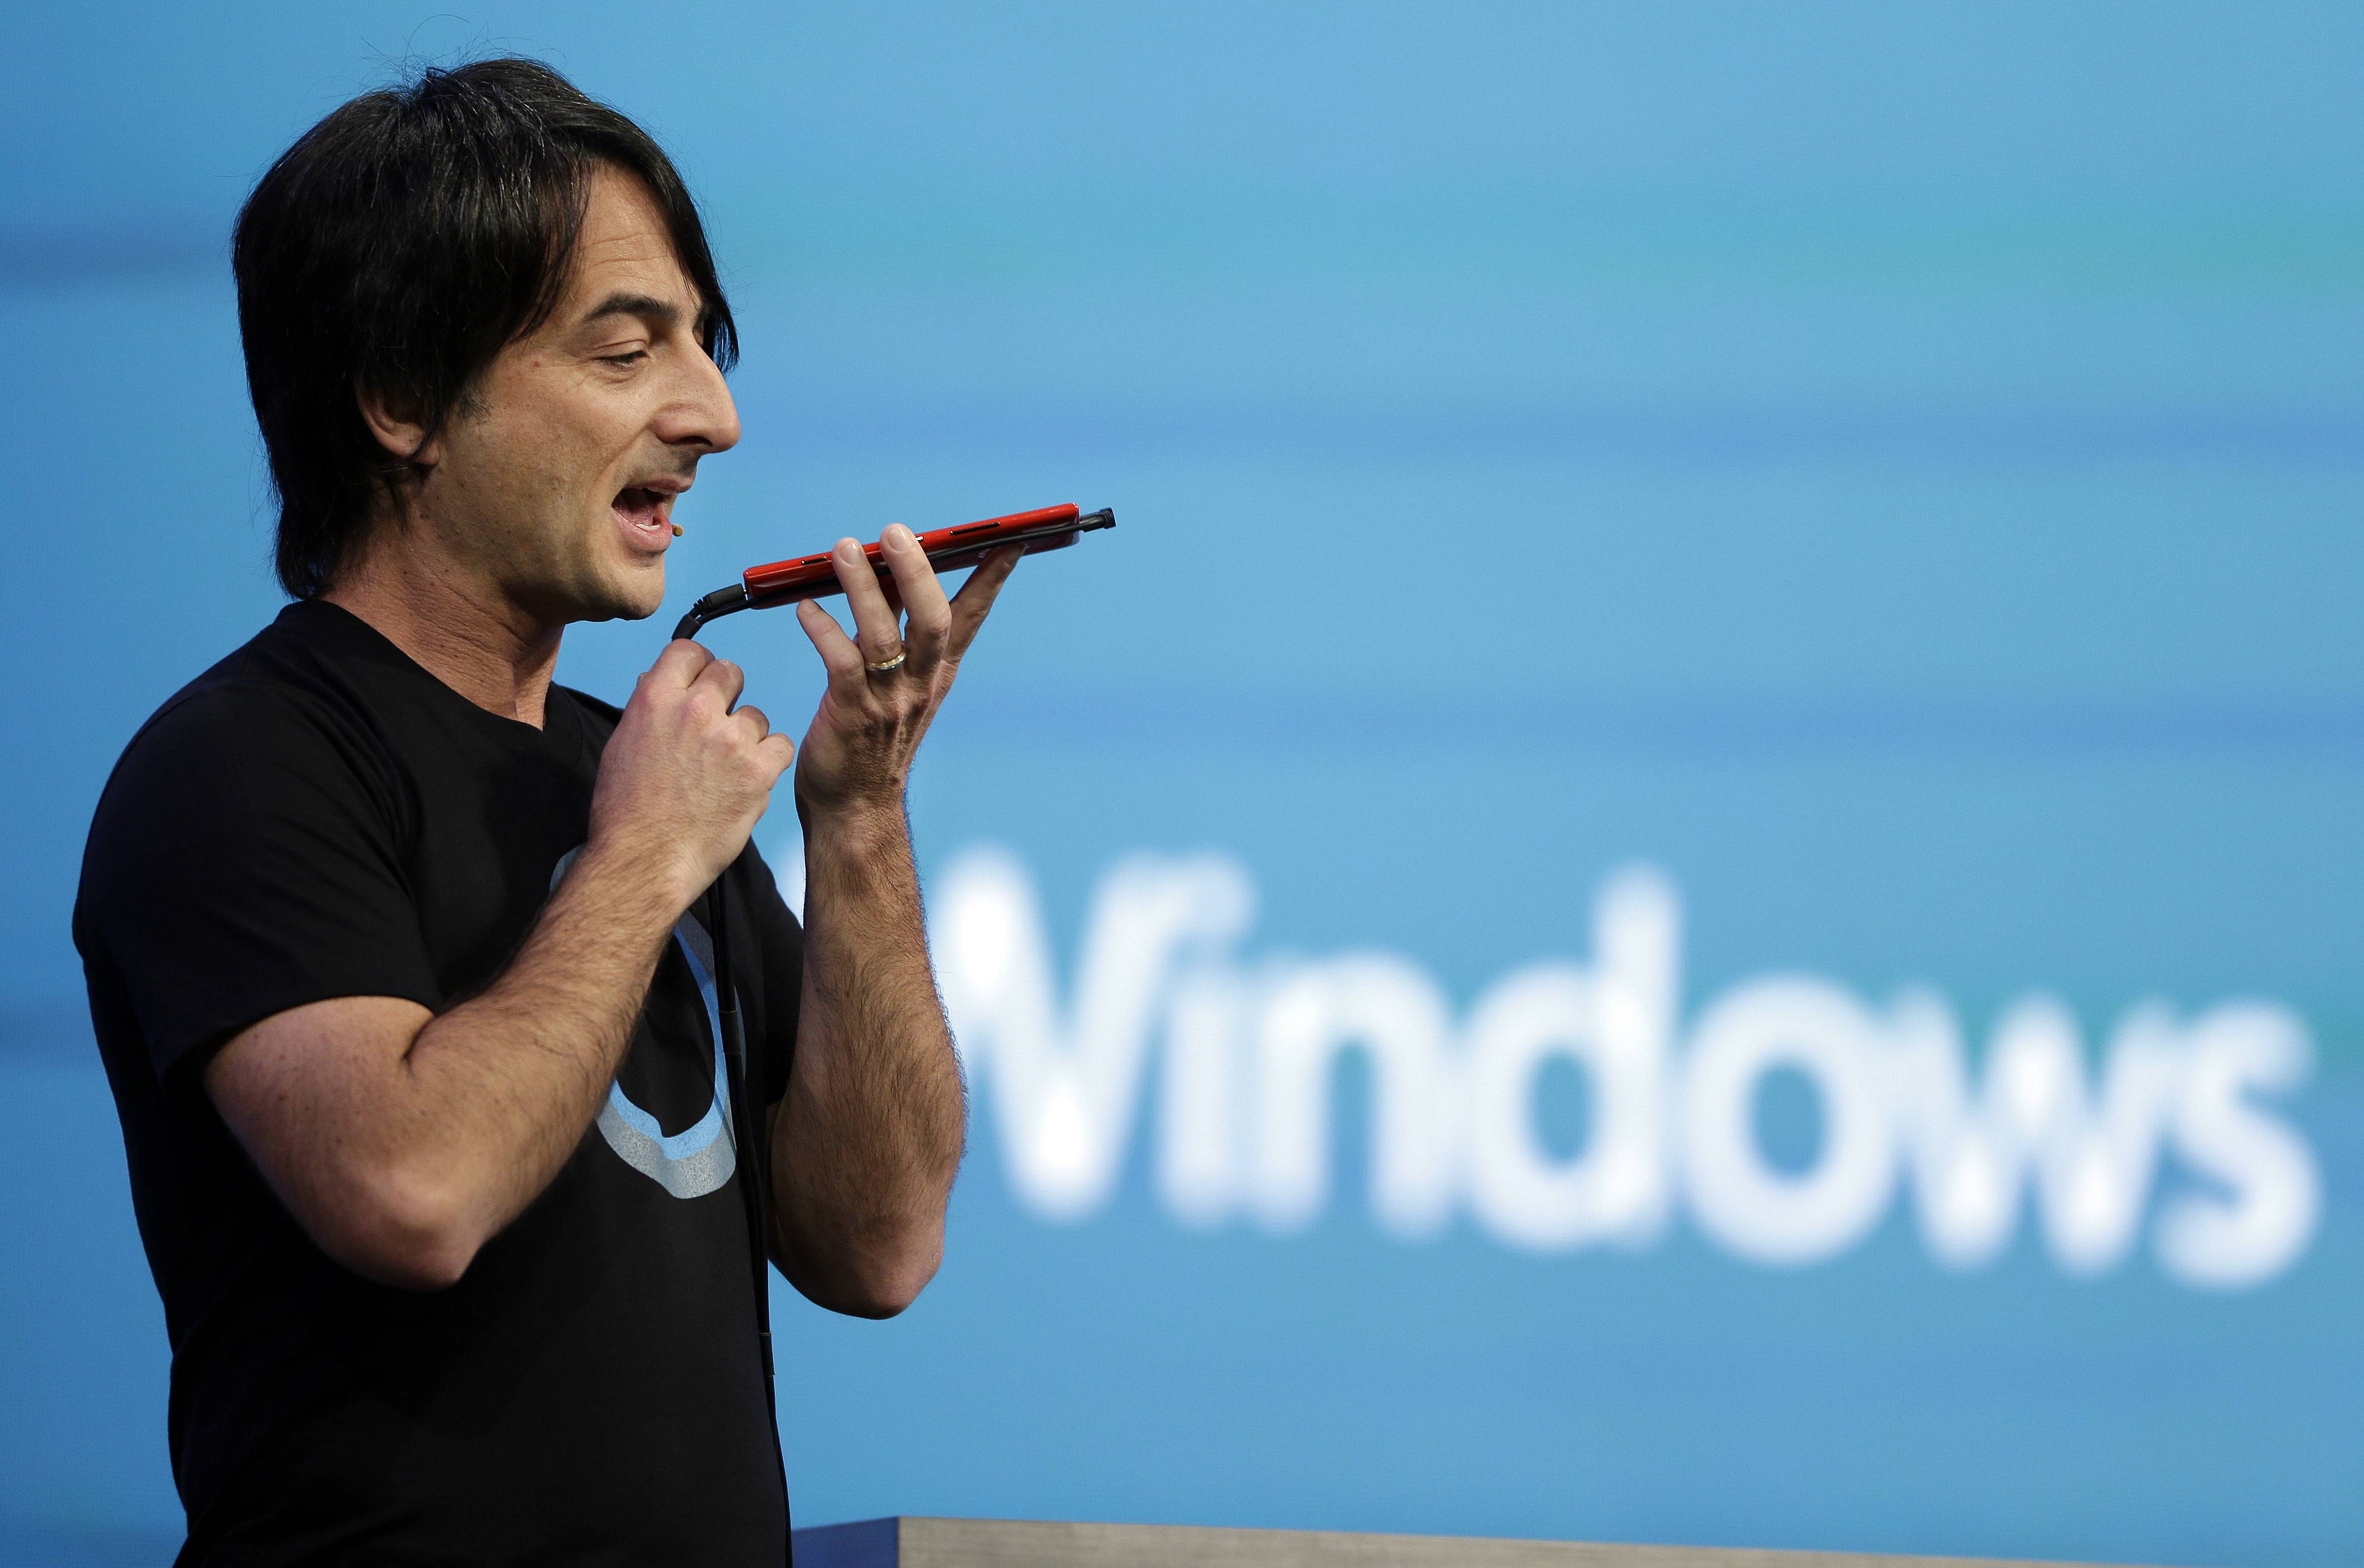 Microsoft corporate vice president Joe Belfiore, of the Operating Systems Group, demonstrates the new Cortana personal assistant during the keynote address of the Build Conference Wednesday, April 2, 2014, in San Francisco.